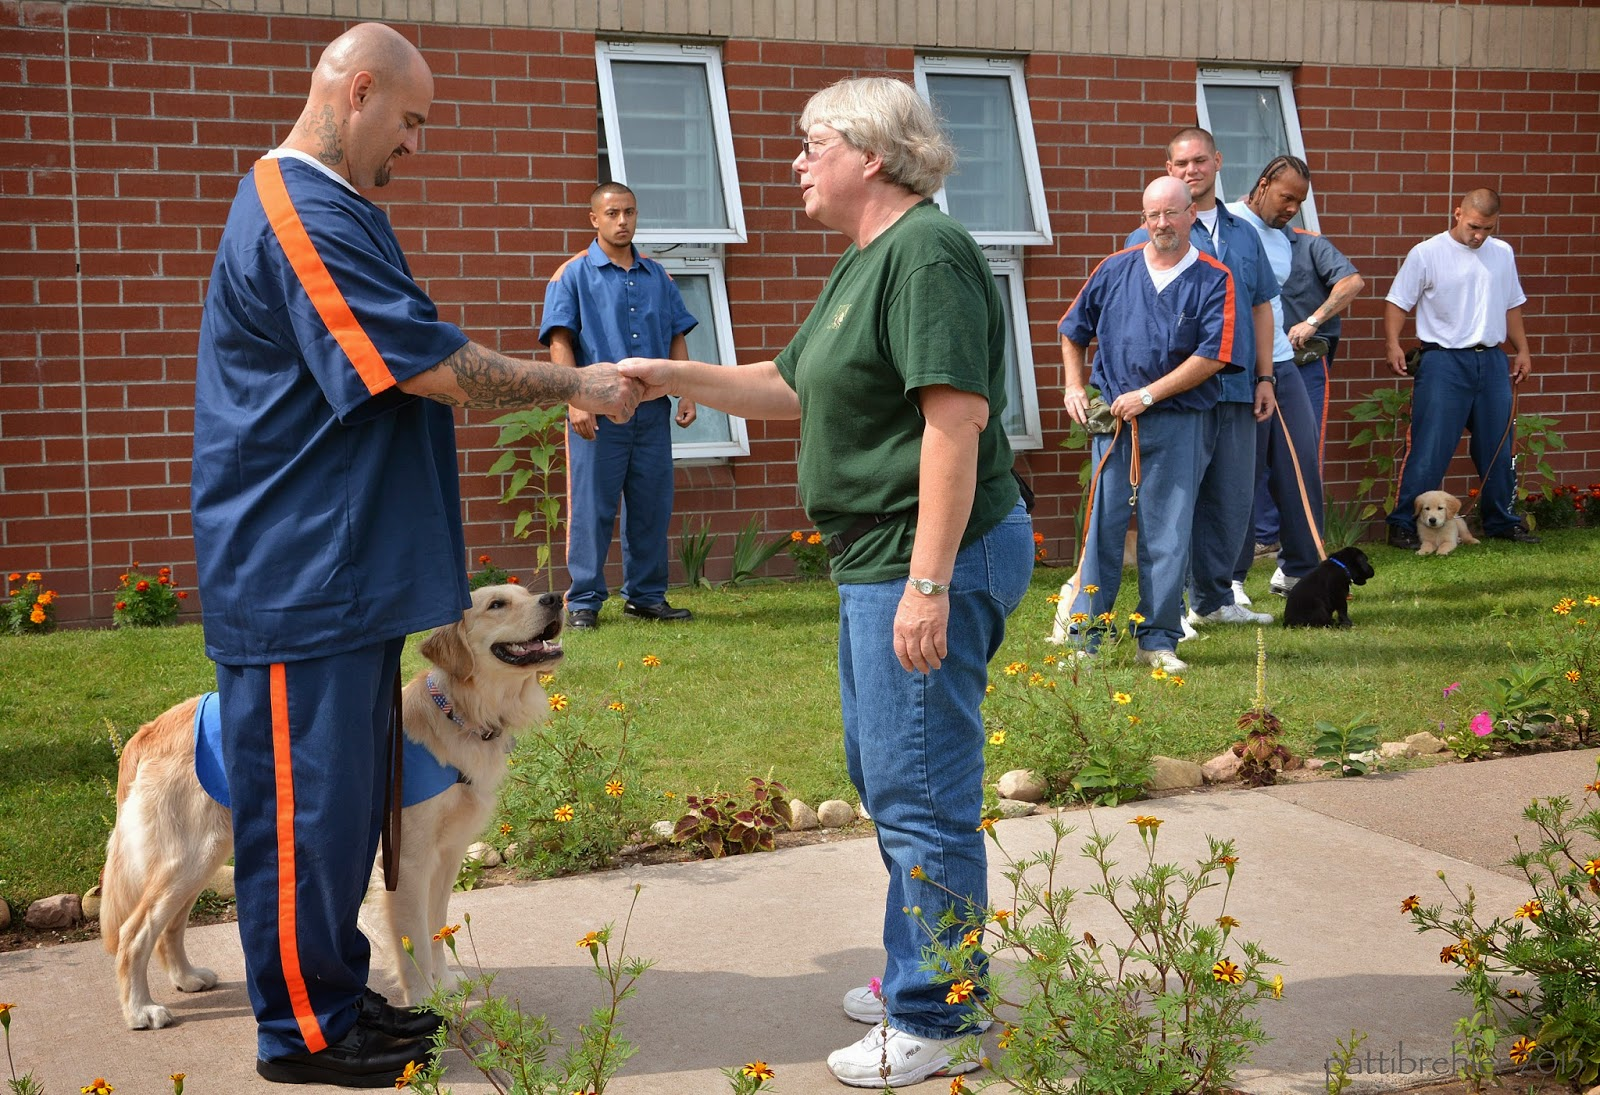 A group of inmates are outside of a brick building with their puppies - they are in the background of the picture. In the foreground is an inmate on the left side shaking hands with a woman on the right side. The inmates are wearing the blue and orange prison uniforms. The woman is wearing a green t-shirt and bluejeans. The inmate on the left has a golden retriever standing at his left side. The dog is wearing a baby blue working jacket and is looking up at their hands, but is calm. There is green grass in the background. The man and woman and dog are standing on a sidewalk. There are flowers lining the sidewalk.